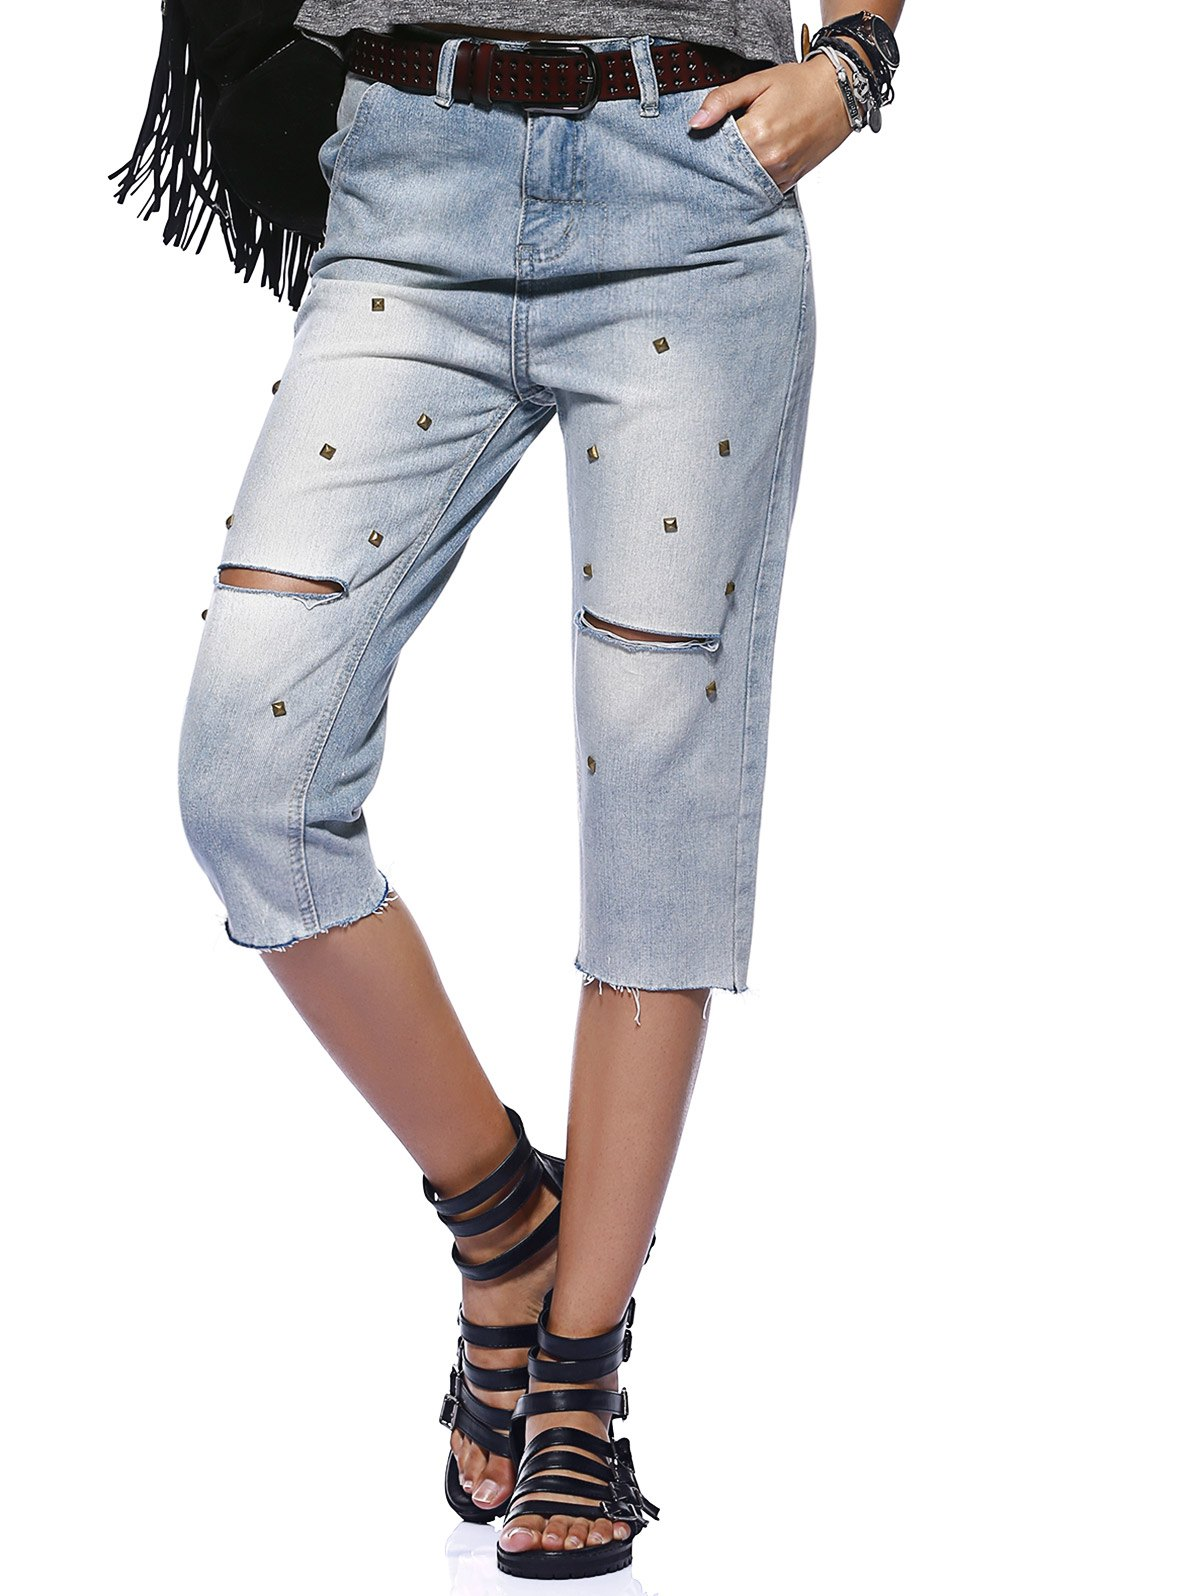 Rivet Frayed  Cropped Jeans - LIGHT BLUE ONE SIZE(FIT SIZE XS TO M)